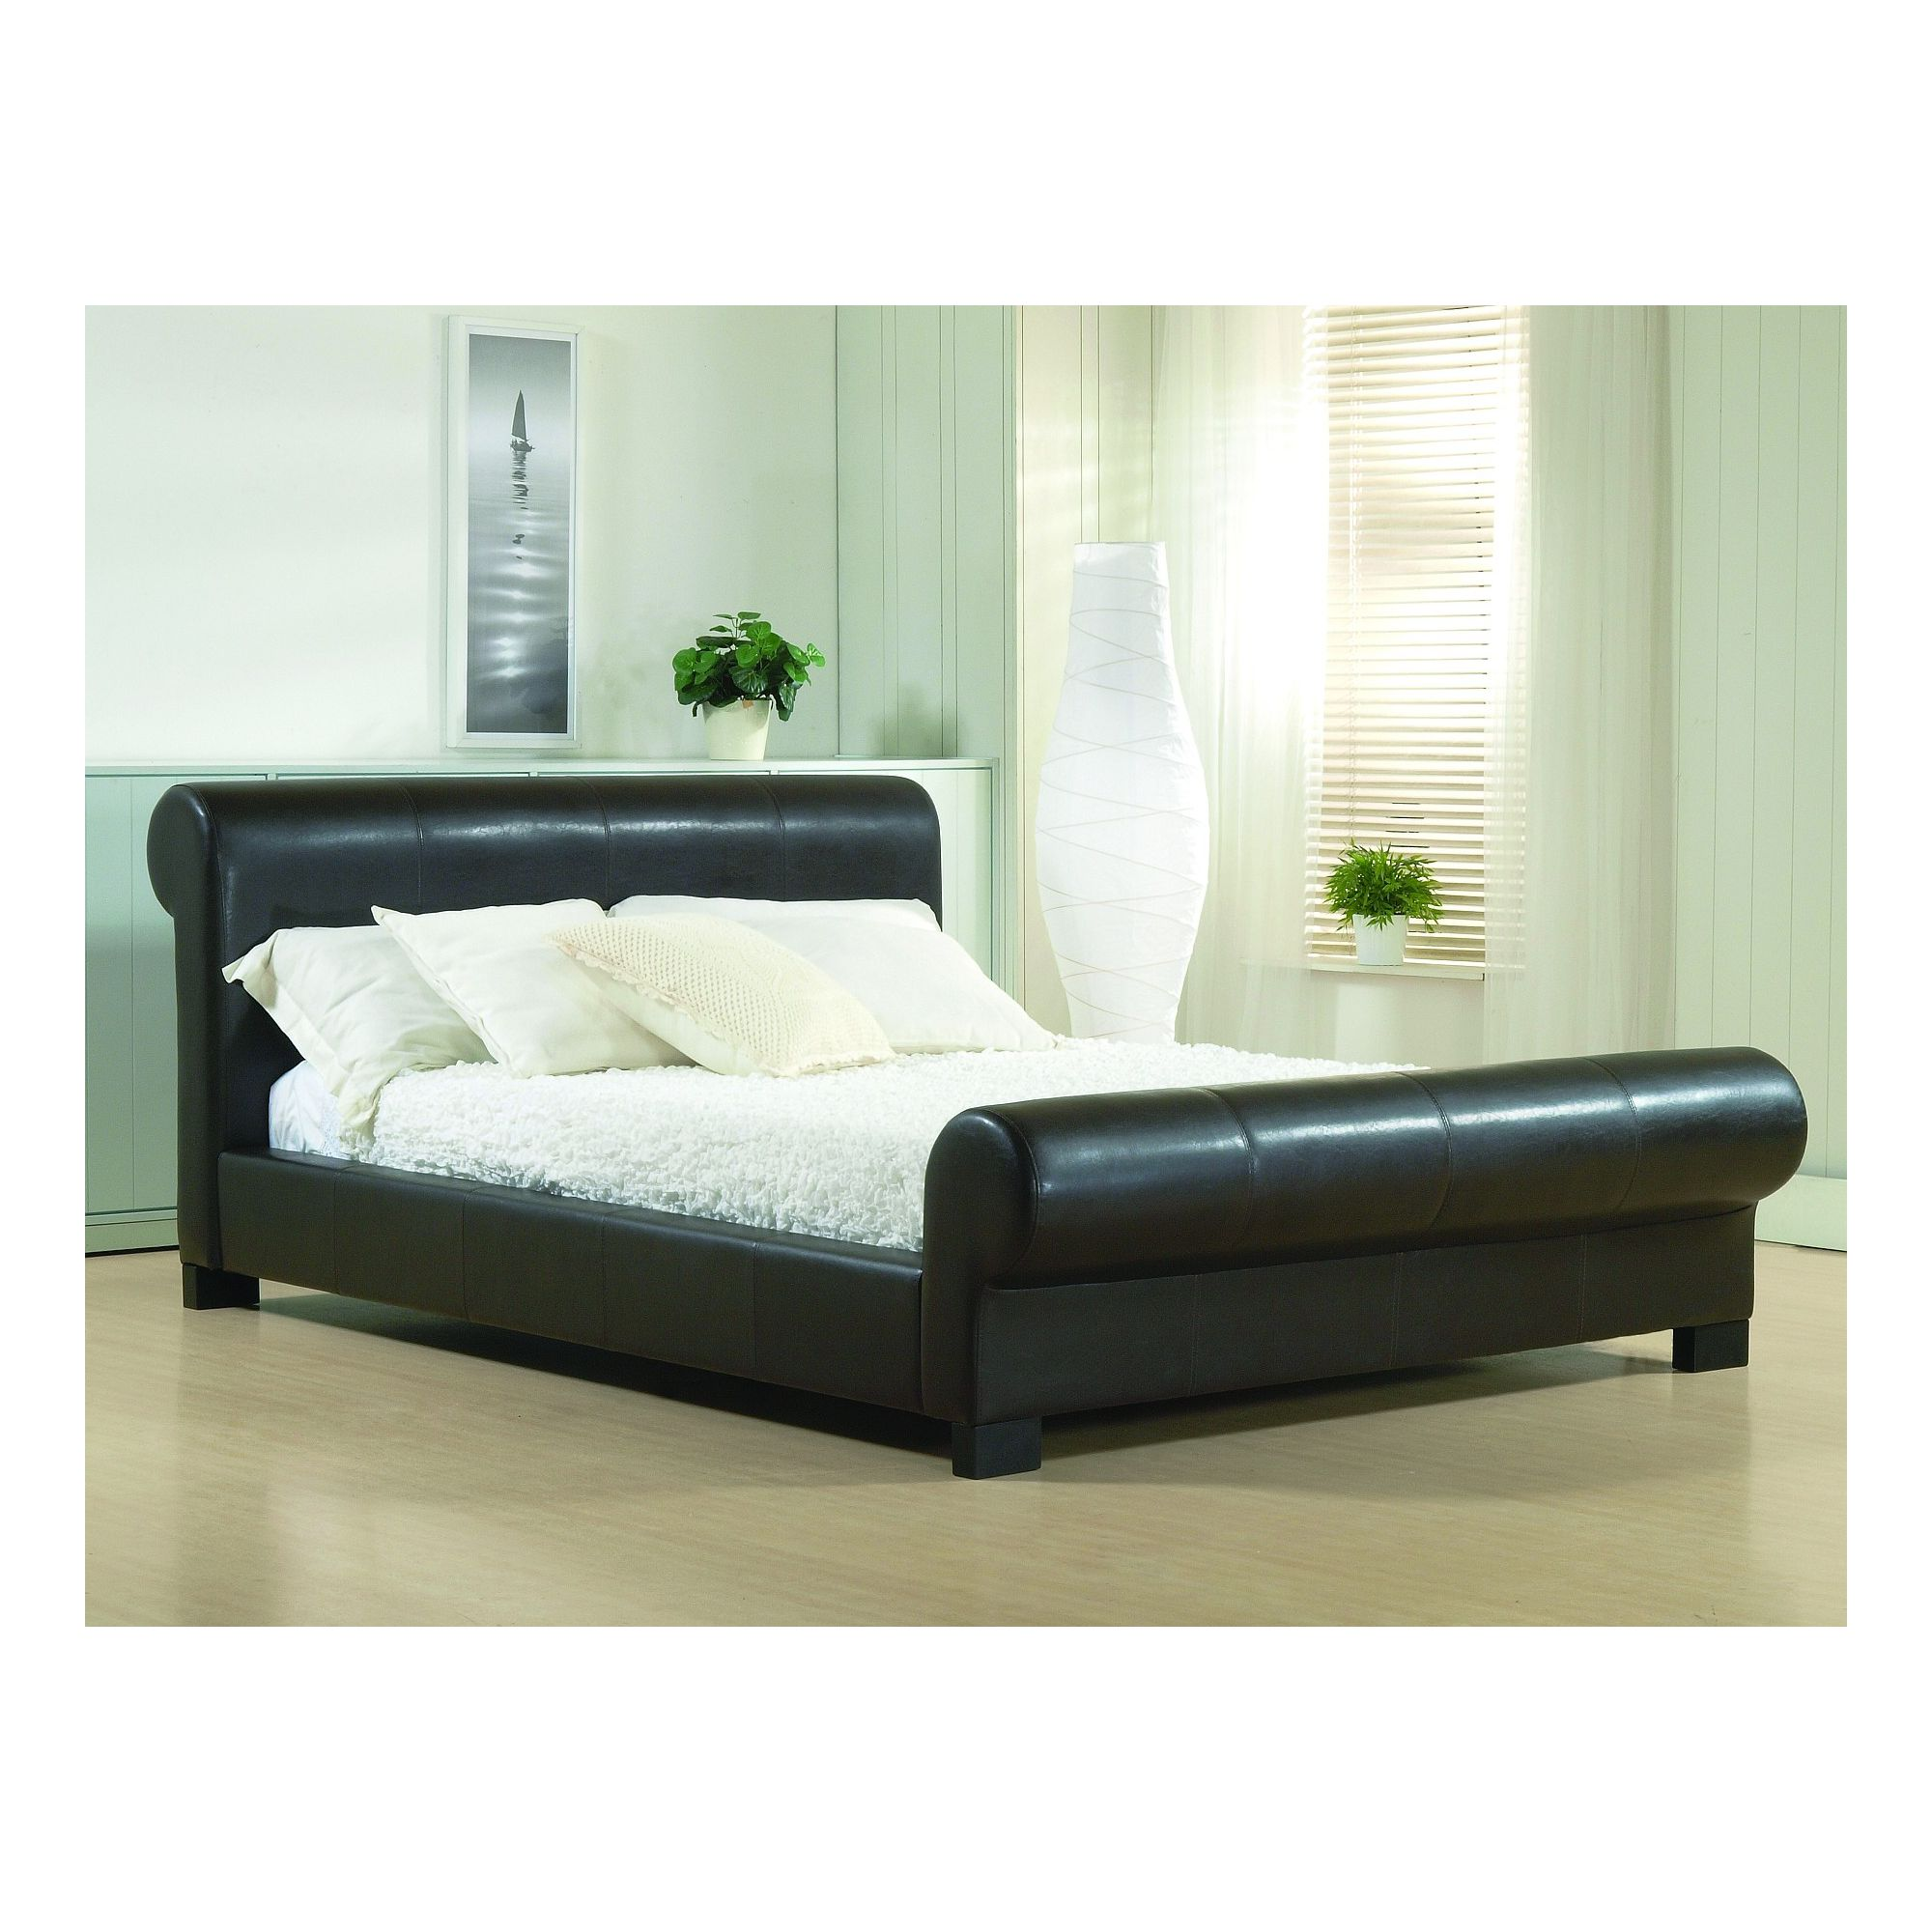 Altruna Valencia Faux Leather Bed Frame - Double - Brown at Tesco Direct